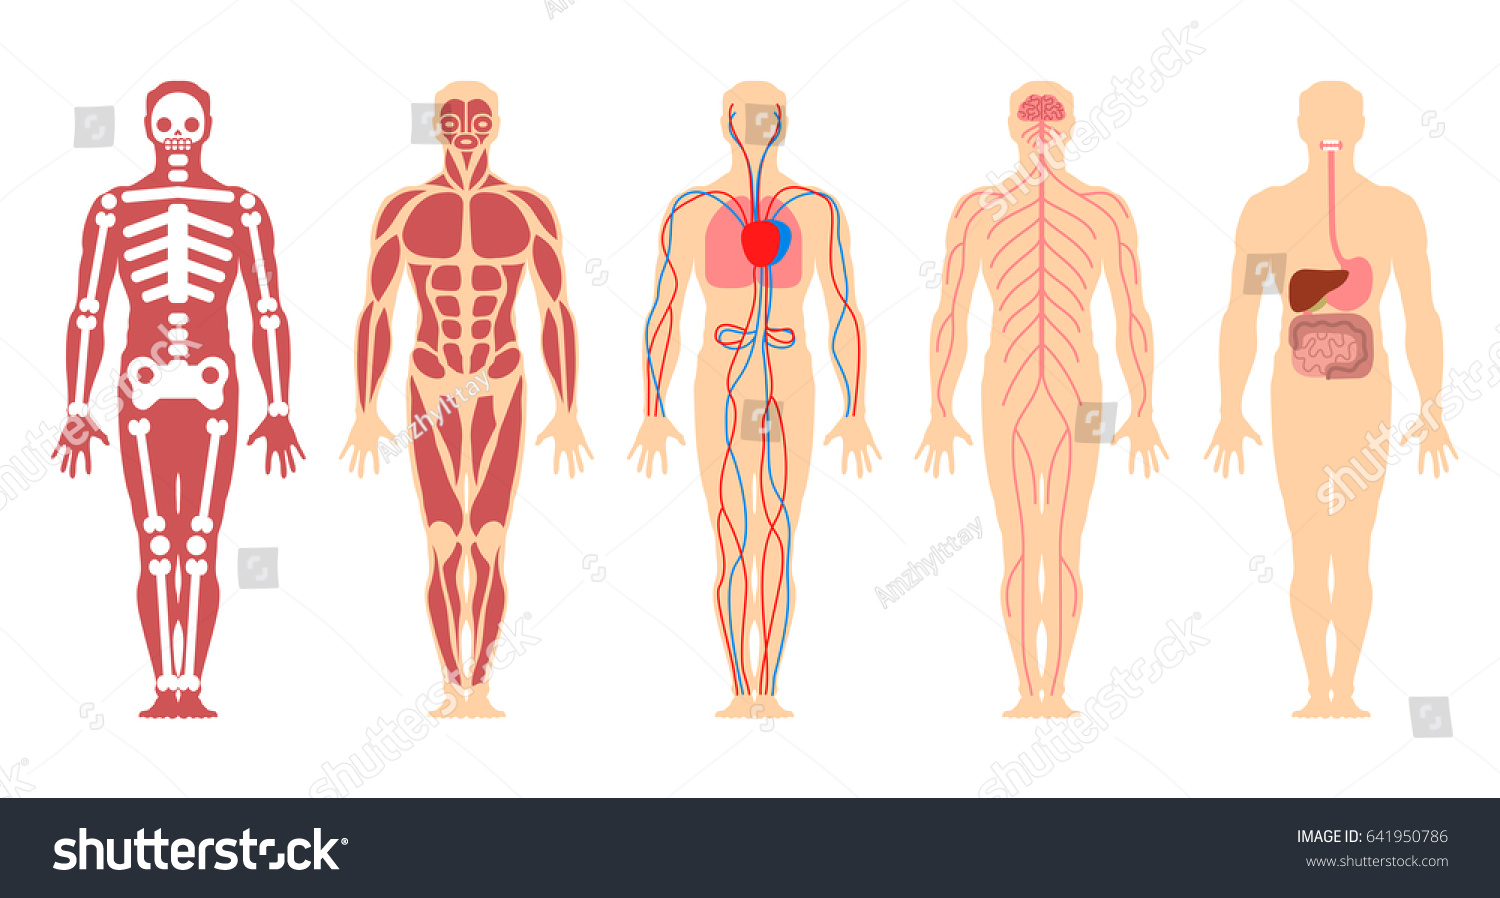 Different systems human body diagram illustration stock vector different systems of human body diagram illustration pooptronica Image collections